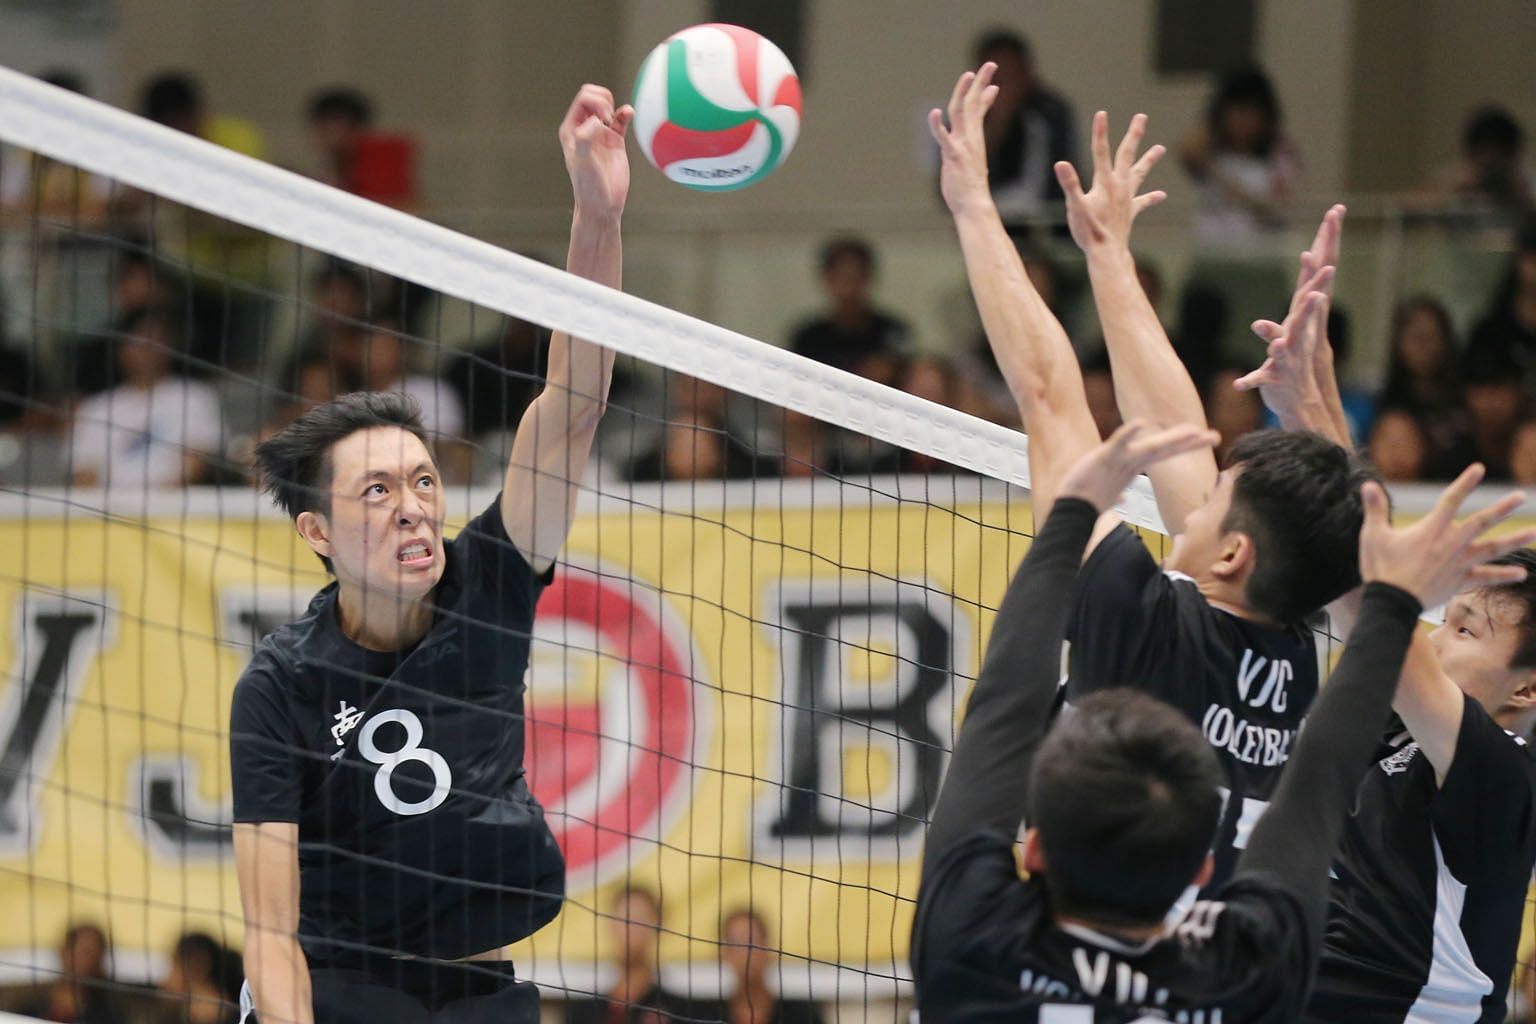 Nicolas Law (left) helping Nanyang Junior College to a 3-1 win over Victoria Junior College in the Schools National A Division boys' volleyball final at Our Tampines Hub yesterday.